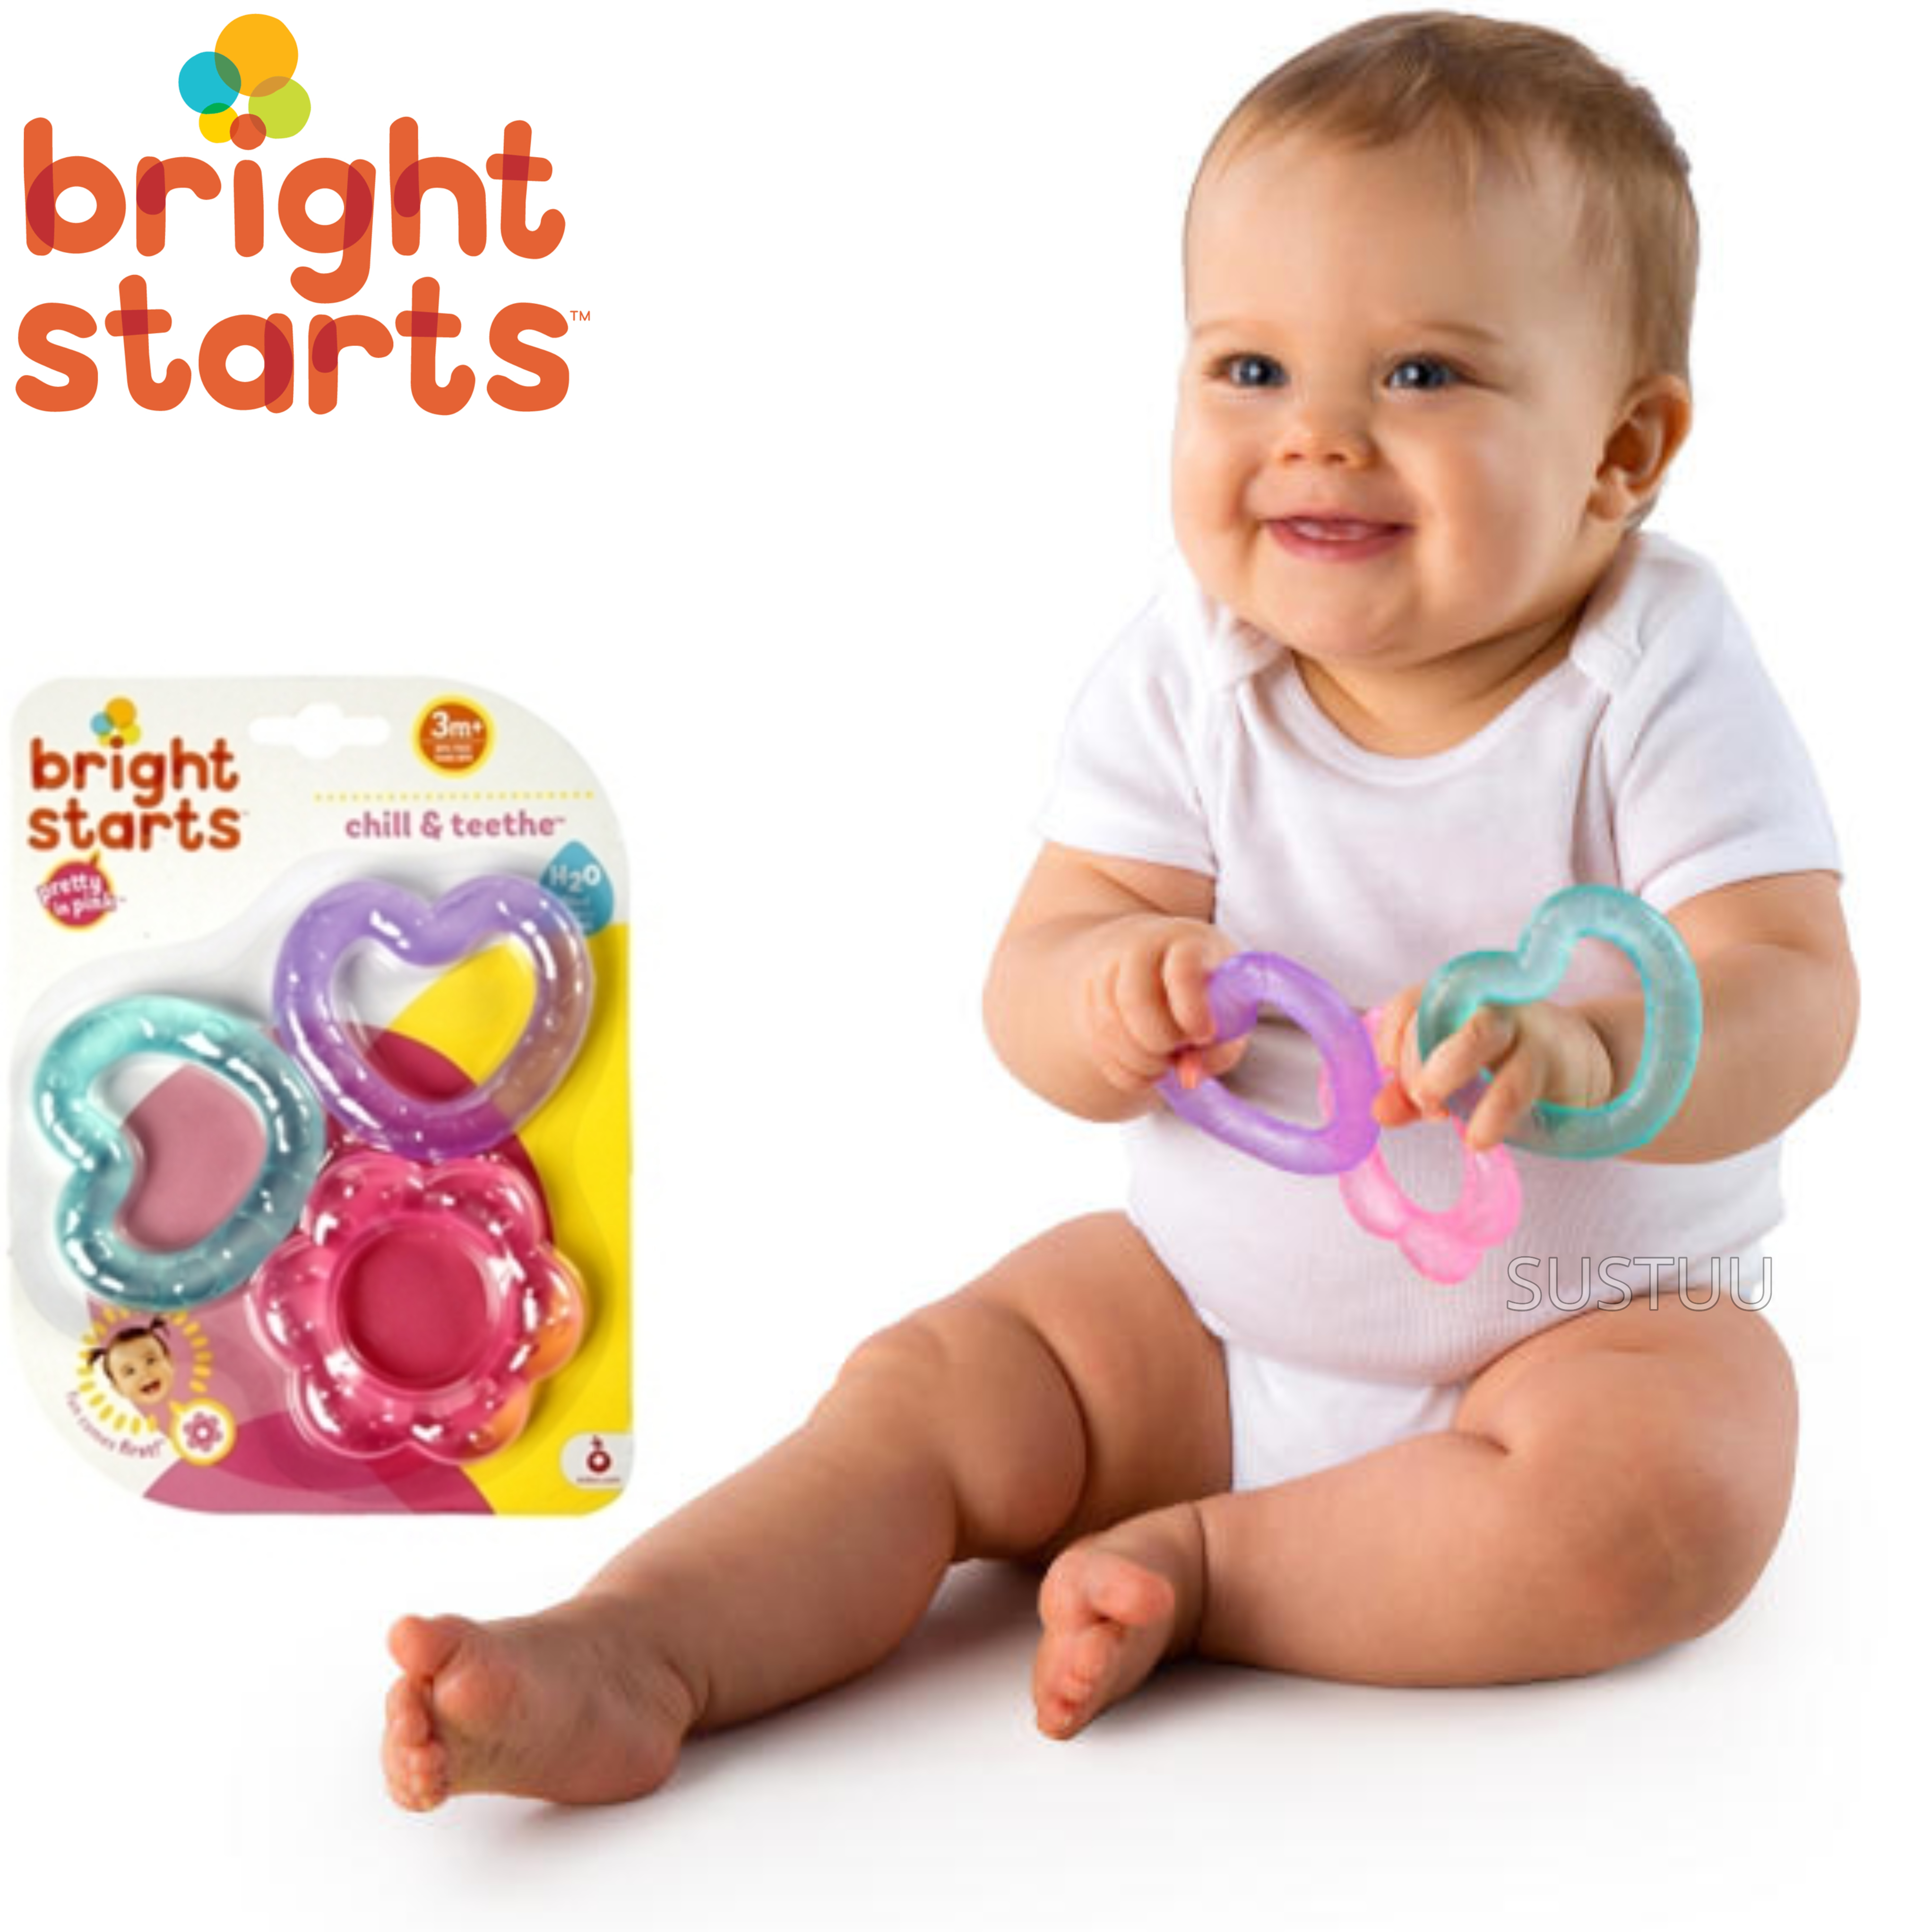 Bright Starts Pretty in Pink Chill N Teether | Kids Fun With Watefilled Dummies x3